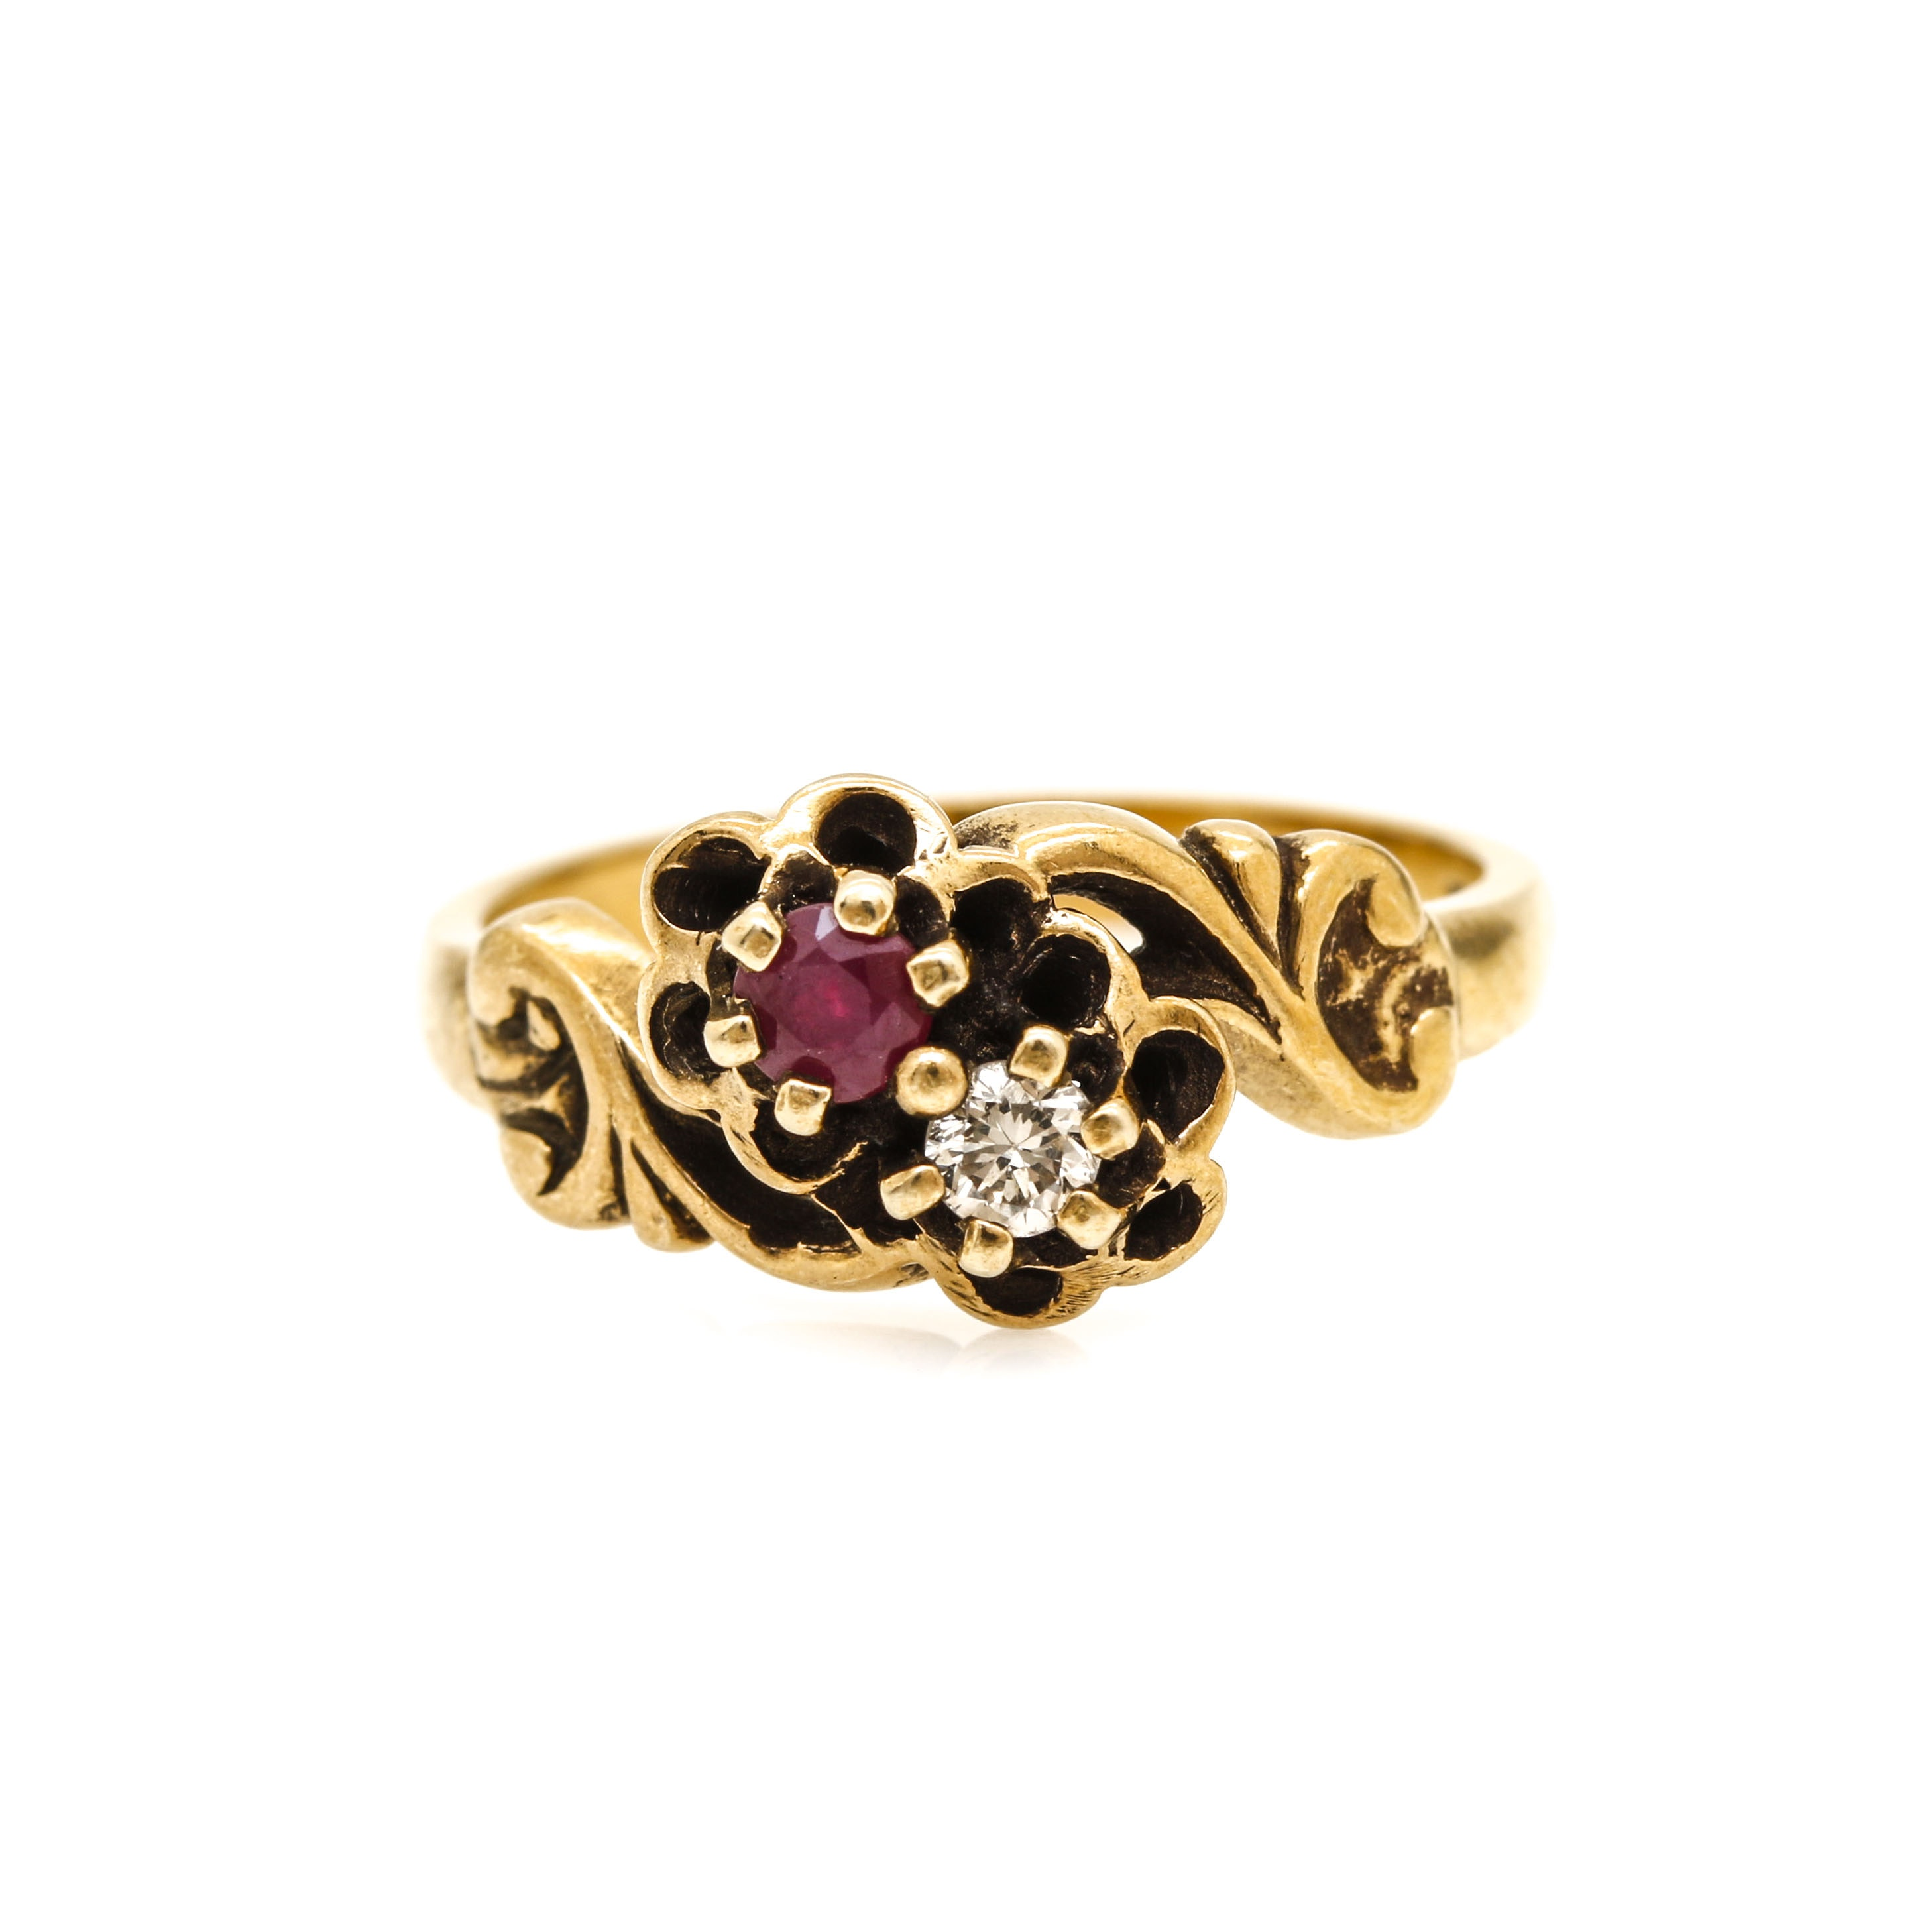 Early 1900's 14K Yellow Gold Diamond and Ruby Toi et Moi Ring